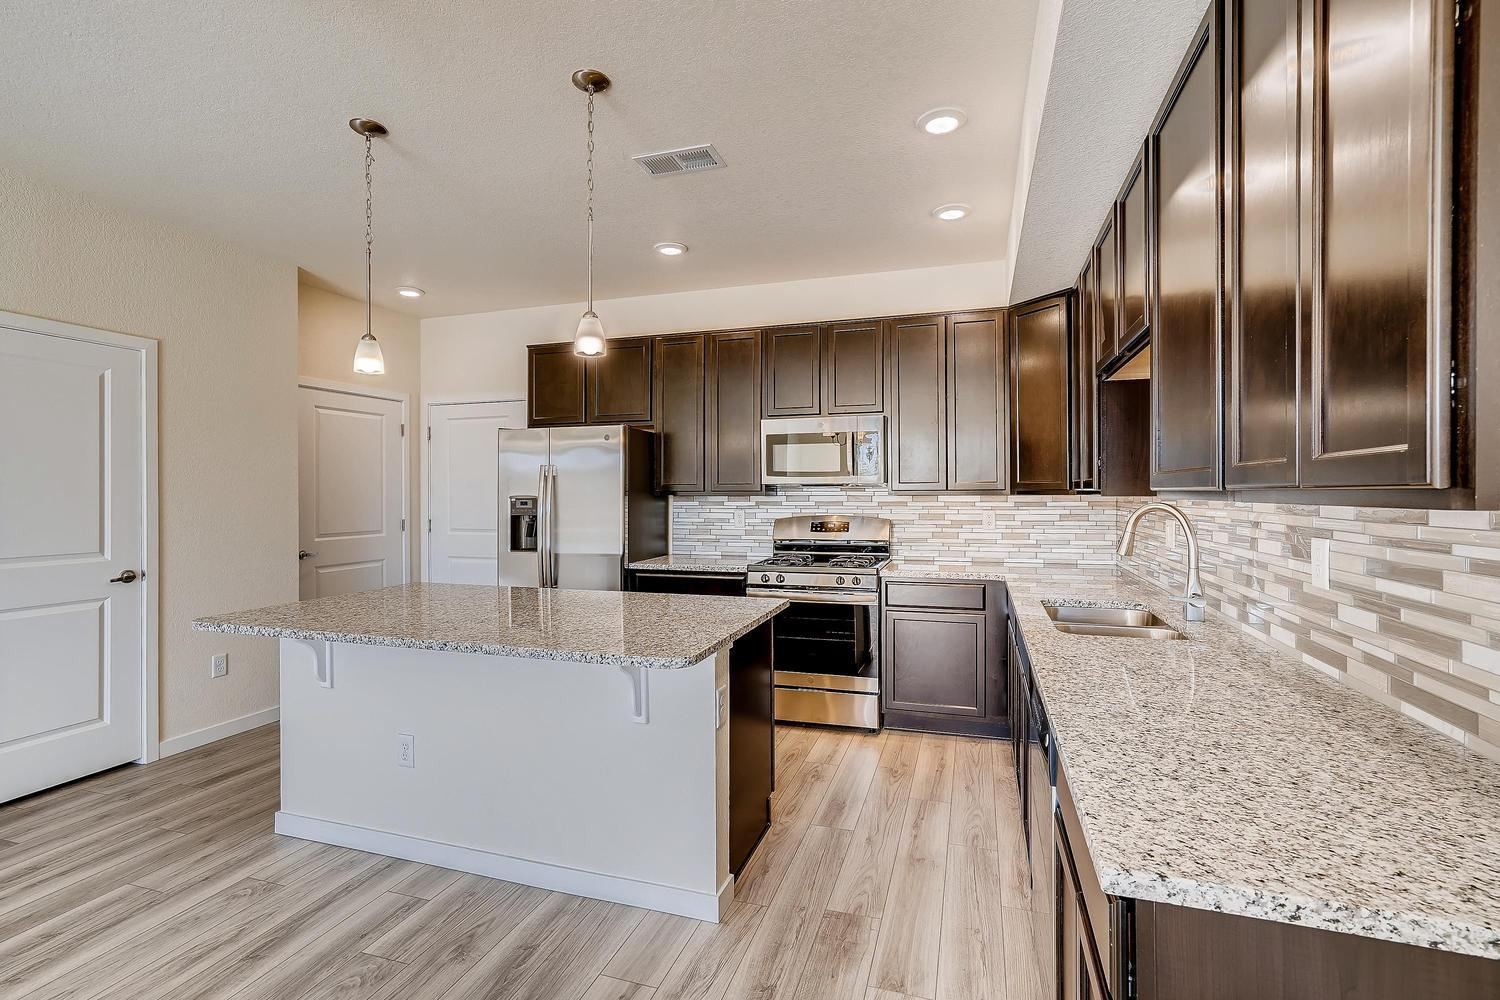 Kitchen featured in the Long Trail By BLVDWAY Communities in Denver, CO